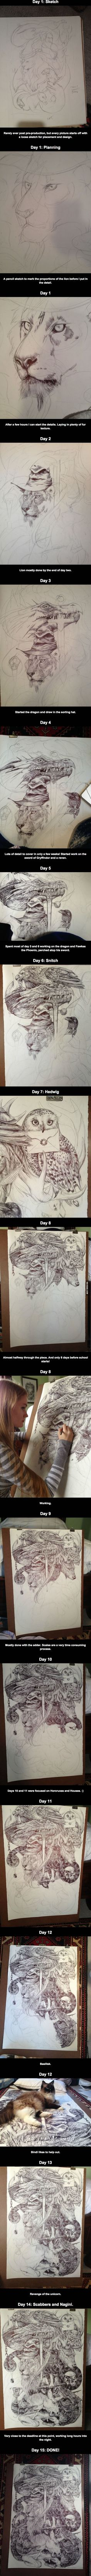 A massive Harry Potter themed drawing